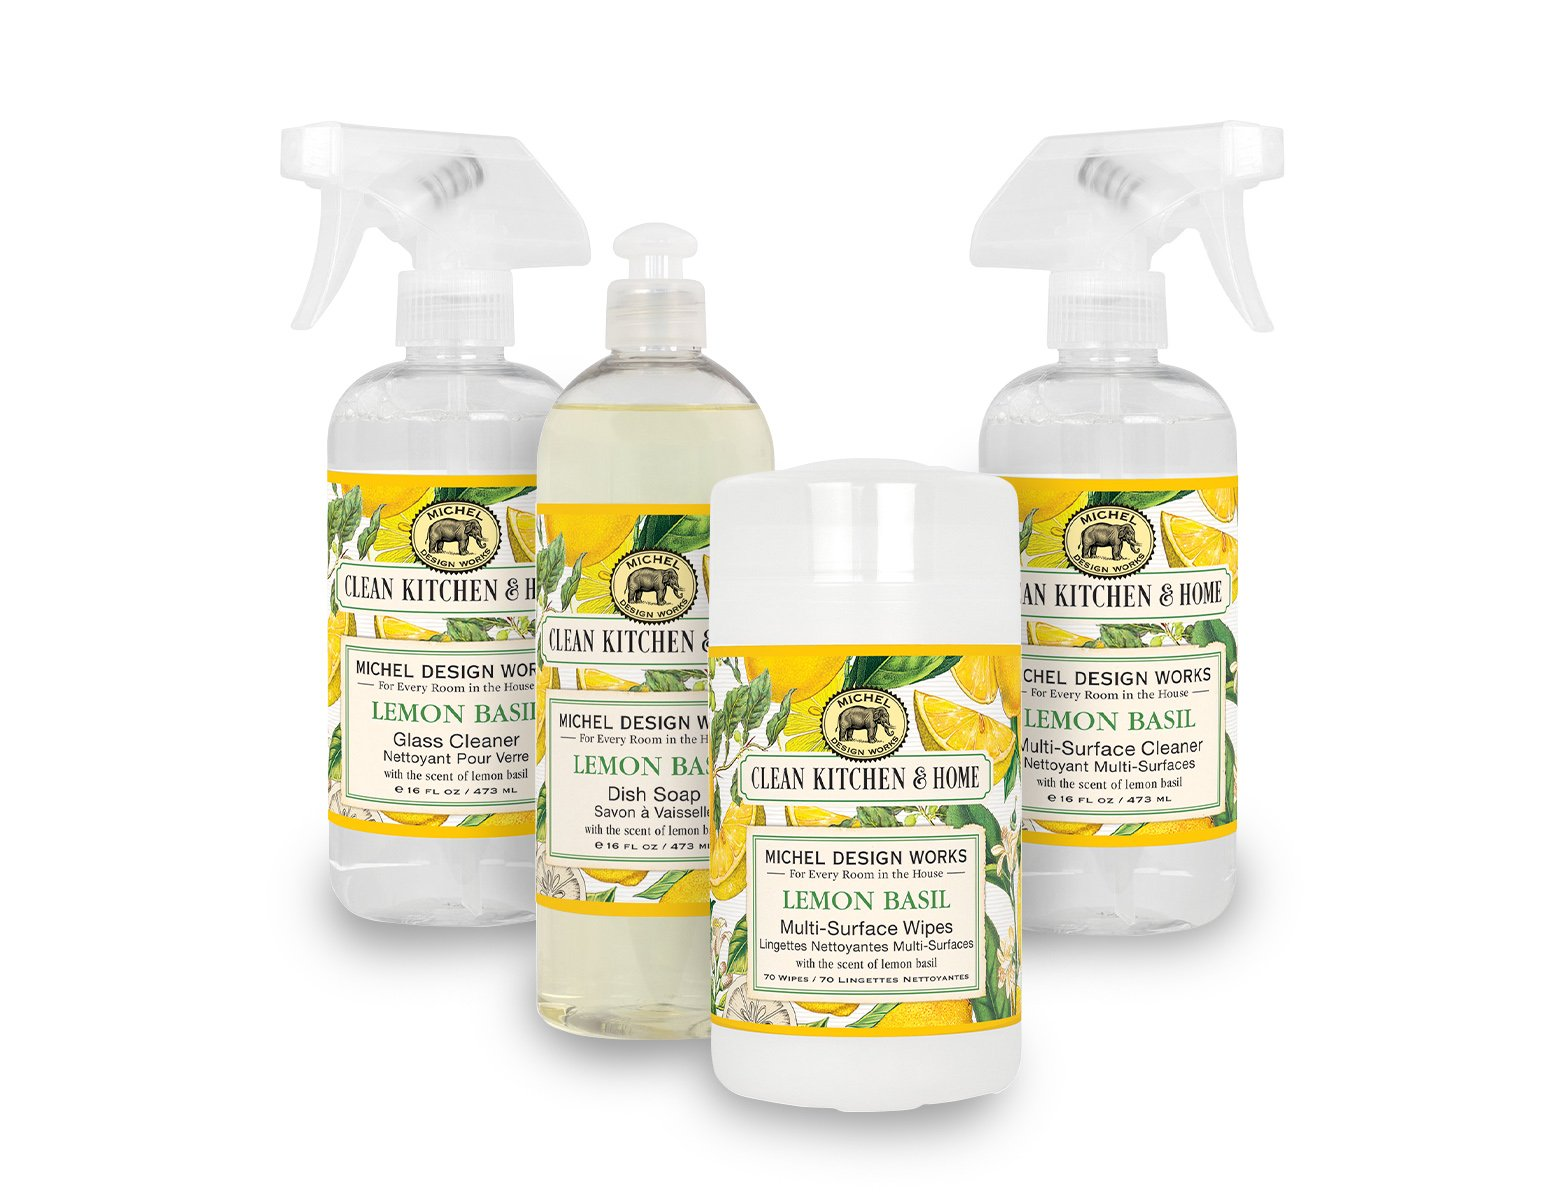 Lemon Basil Clean Kitchen Set